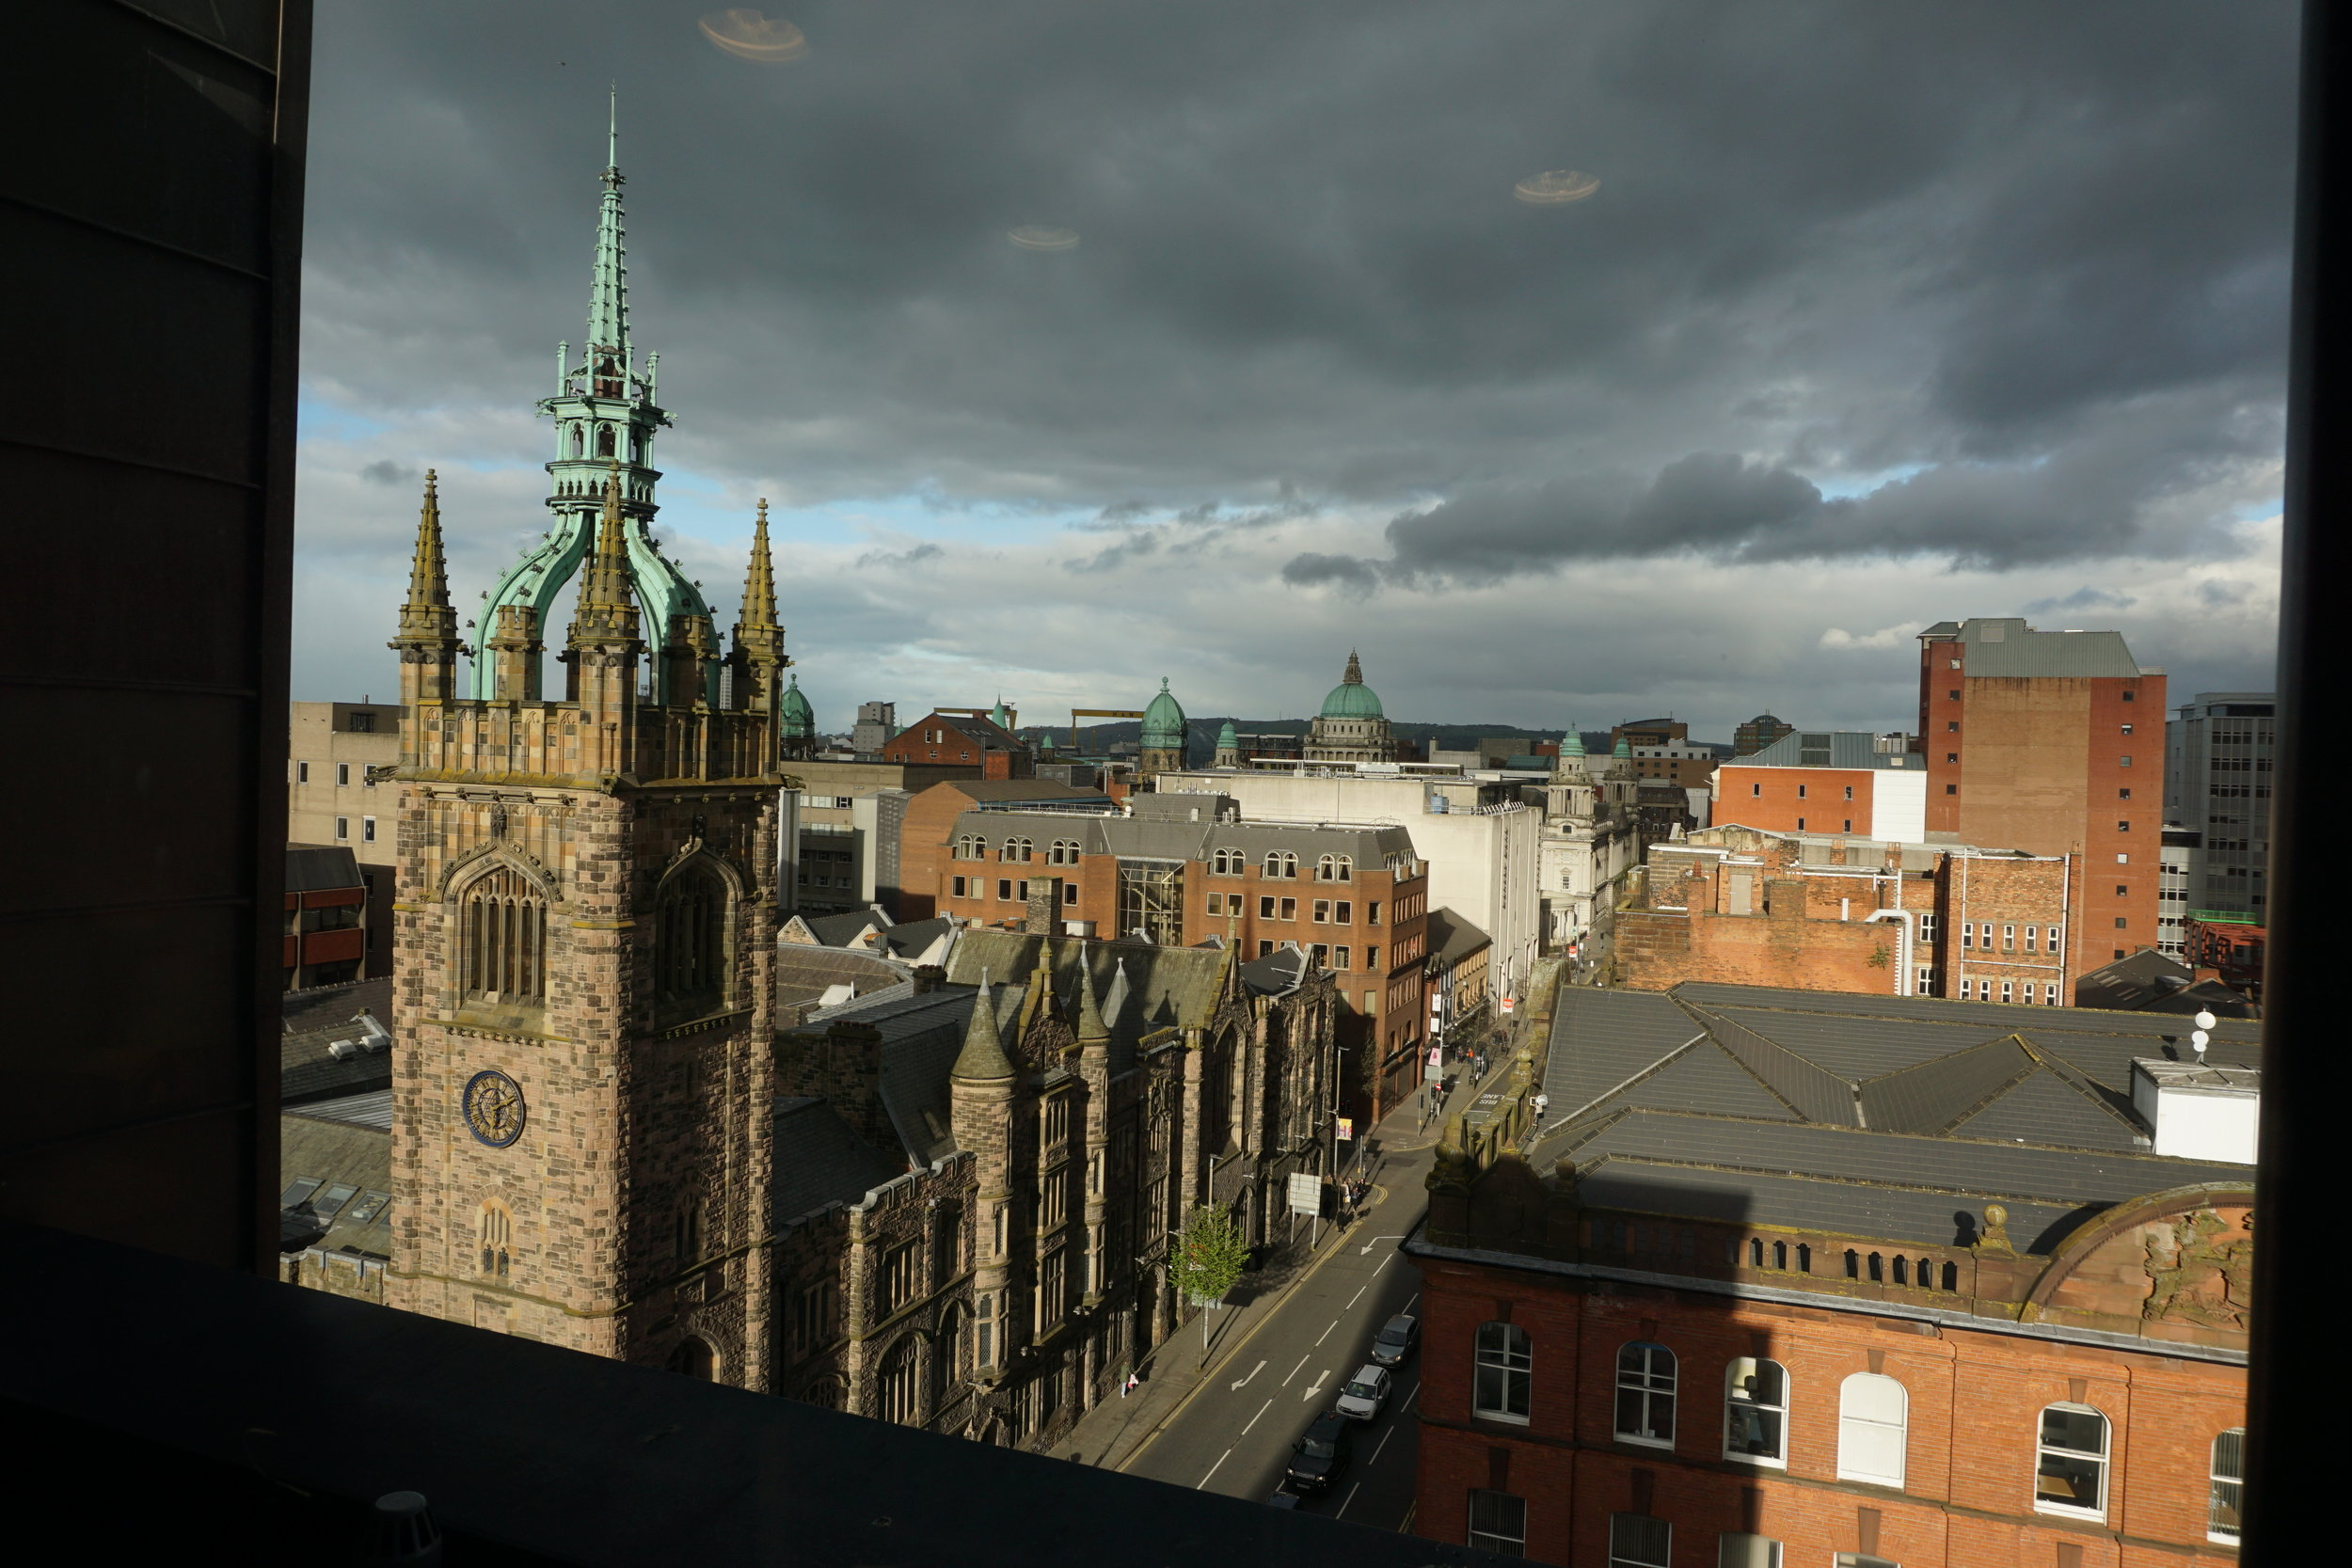 The city of Belfast served as the host city to this year's conference for administrators of international peace museums.